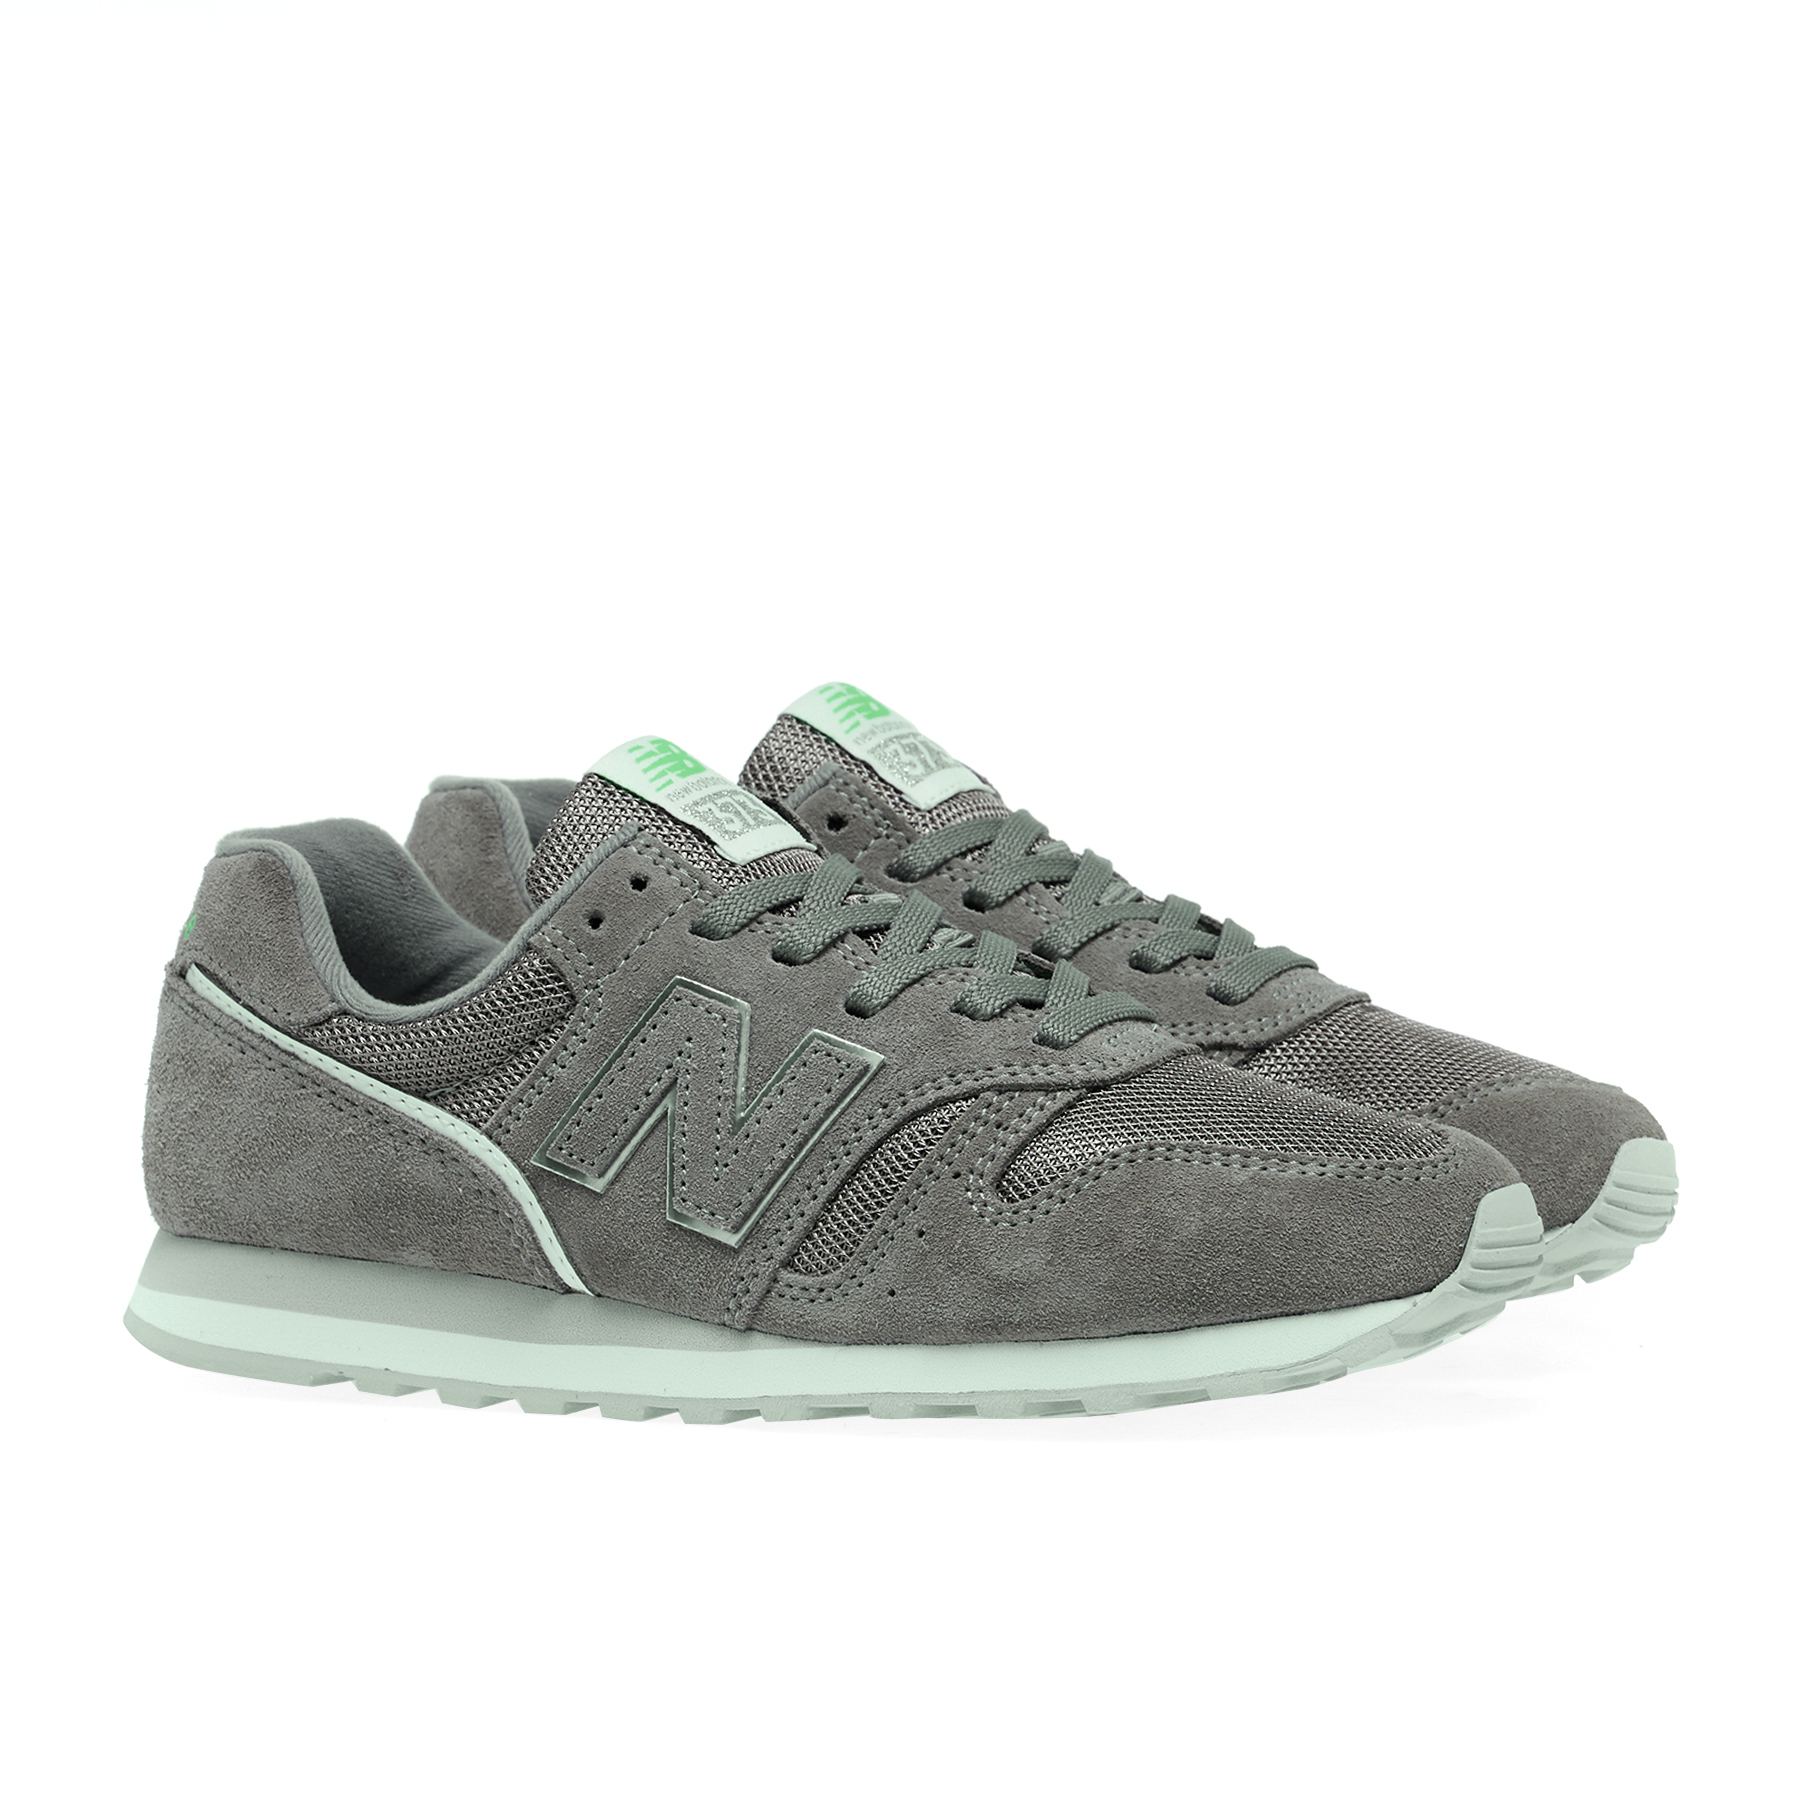 New Balance Wl373 Womens Shoes | Free Delivery Options